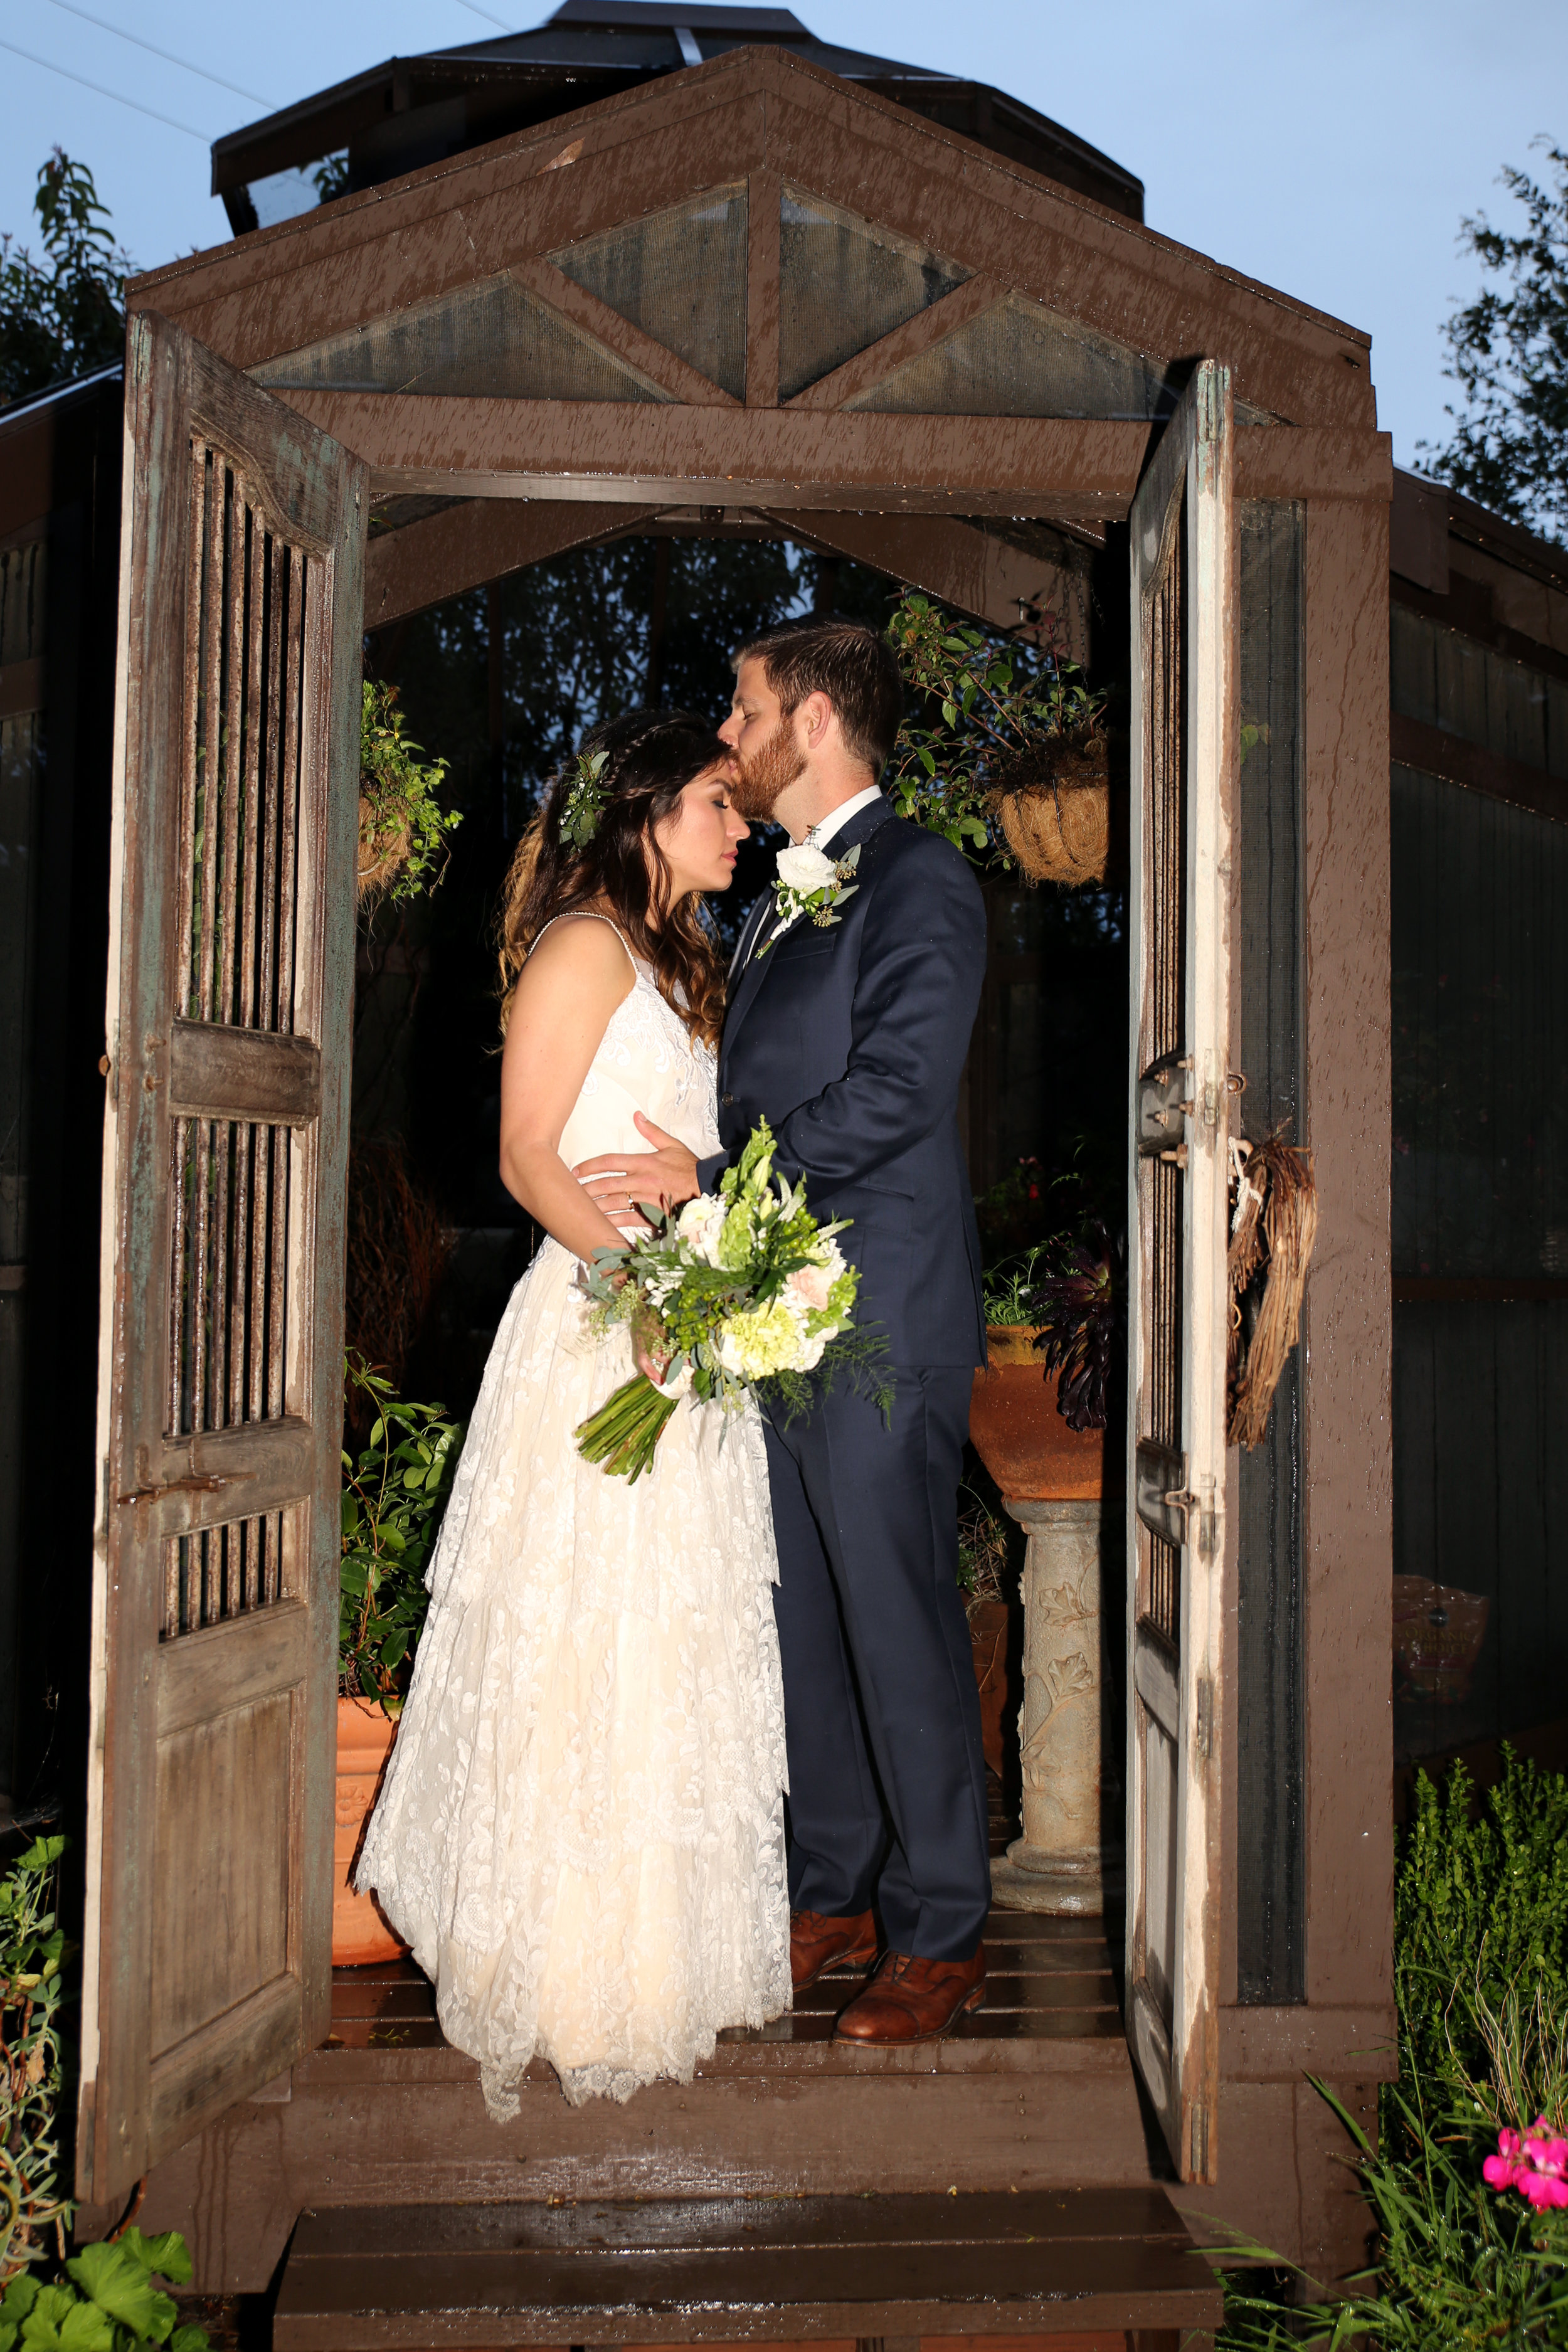 ShadowcatcherGalleryOne_SanDiegoWeddingPhotogrpaher_107.JPG